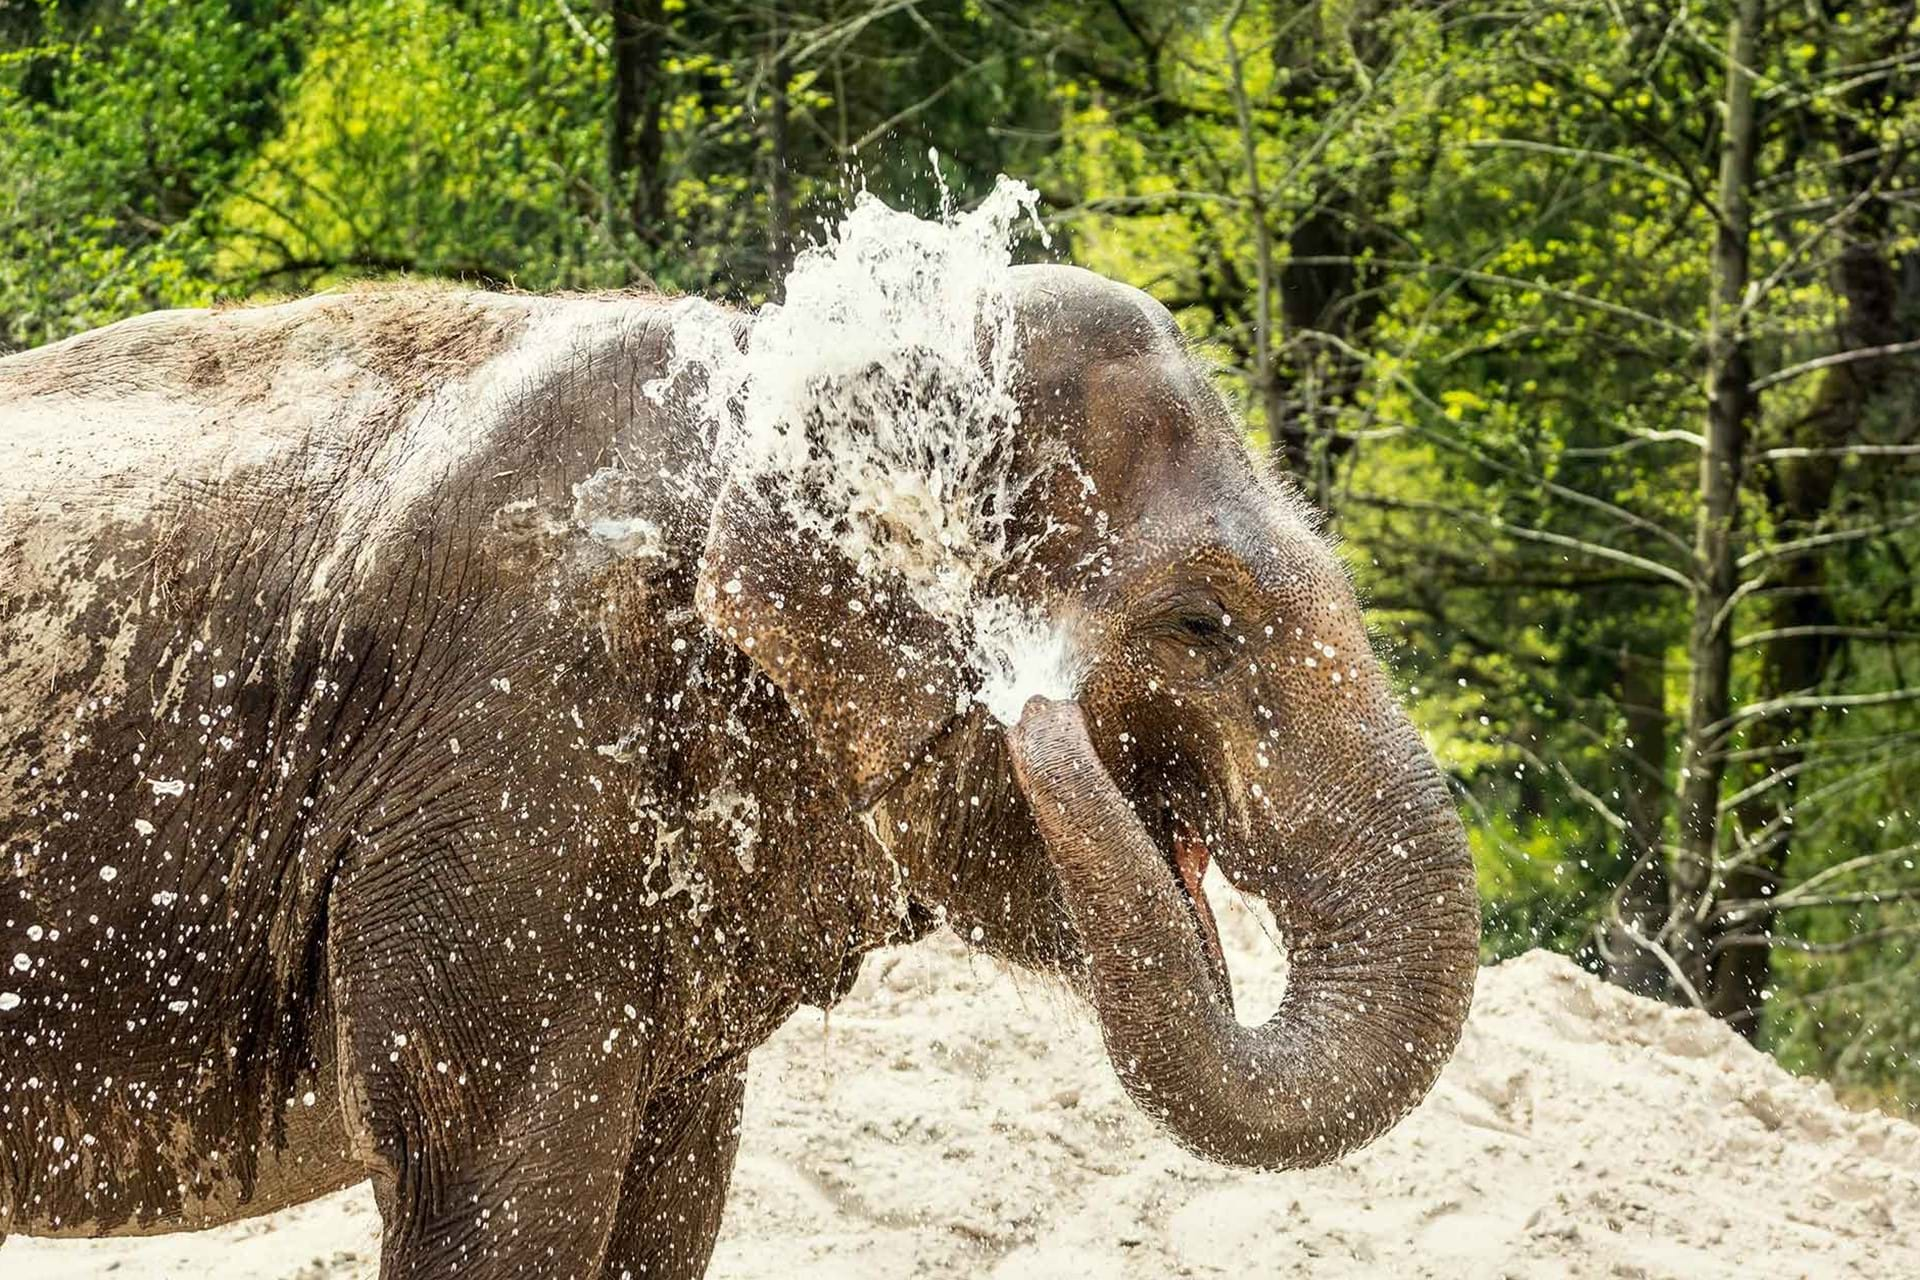 An Asian elephant can hold 8.5 L of water in its trunk - Serious Facts